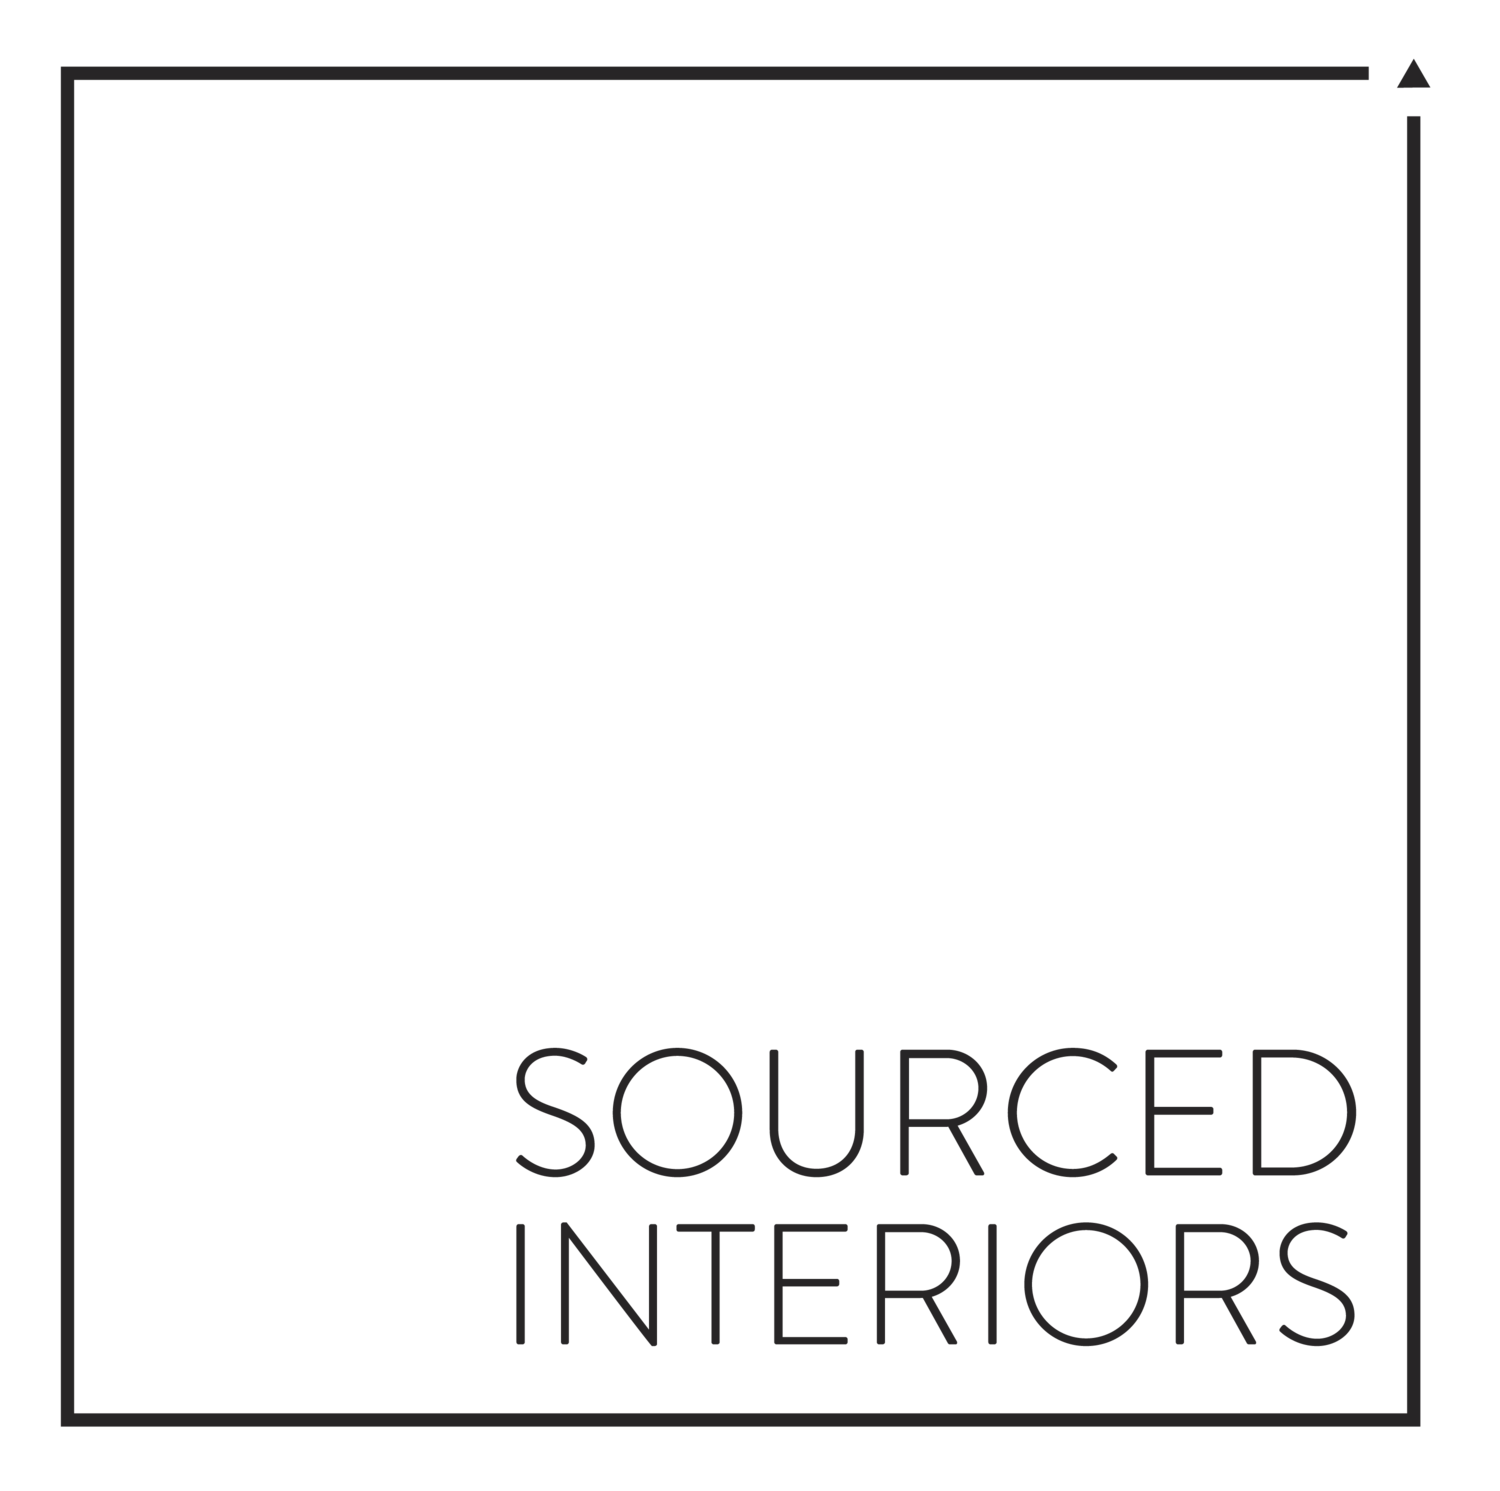 Sourced Interiors